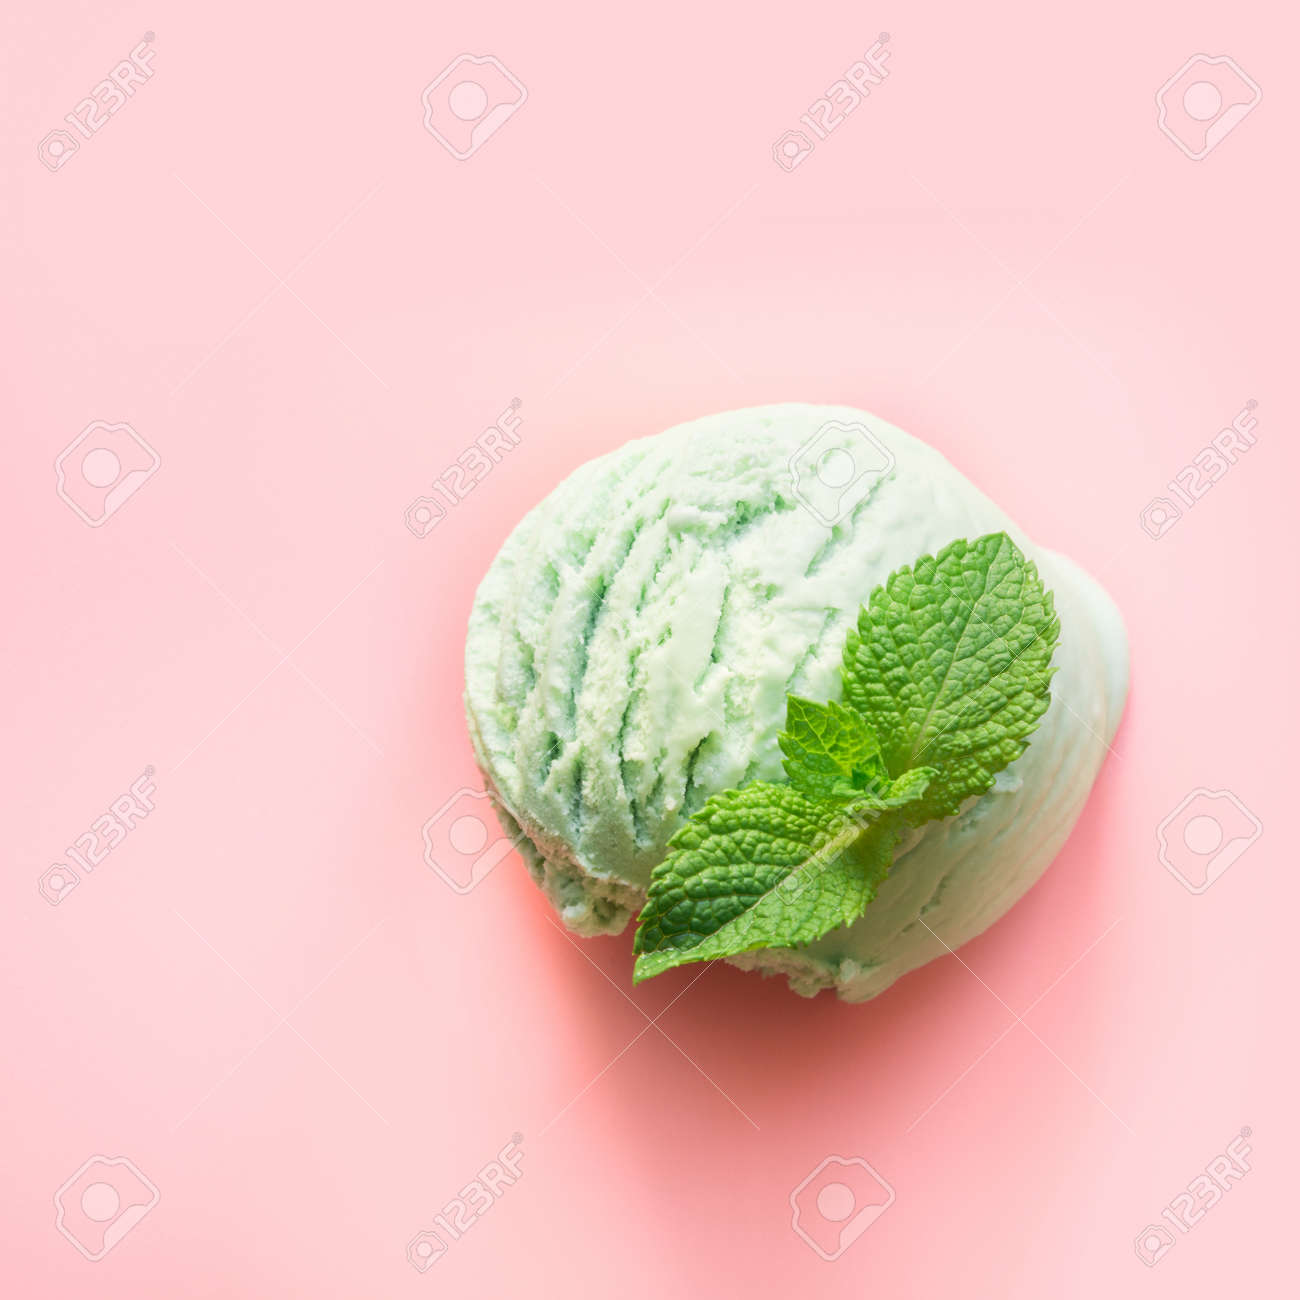 One green pistachio or matcha tea ice cream ball with mint on pink background. - 126572846